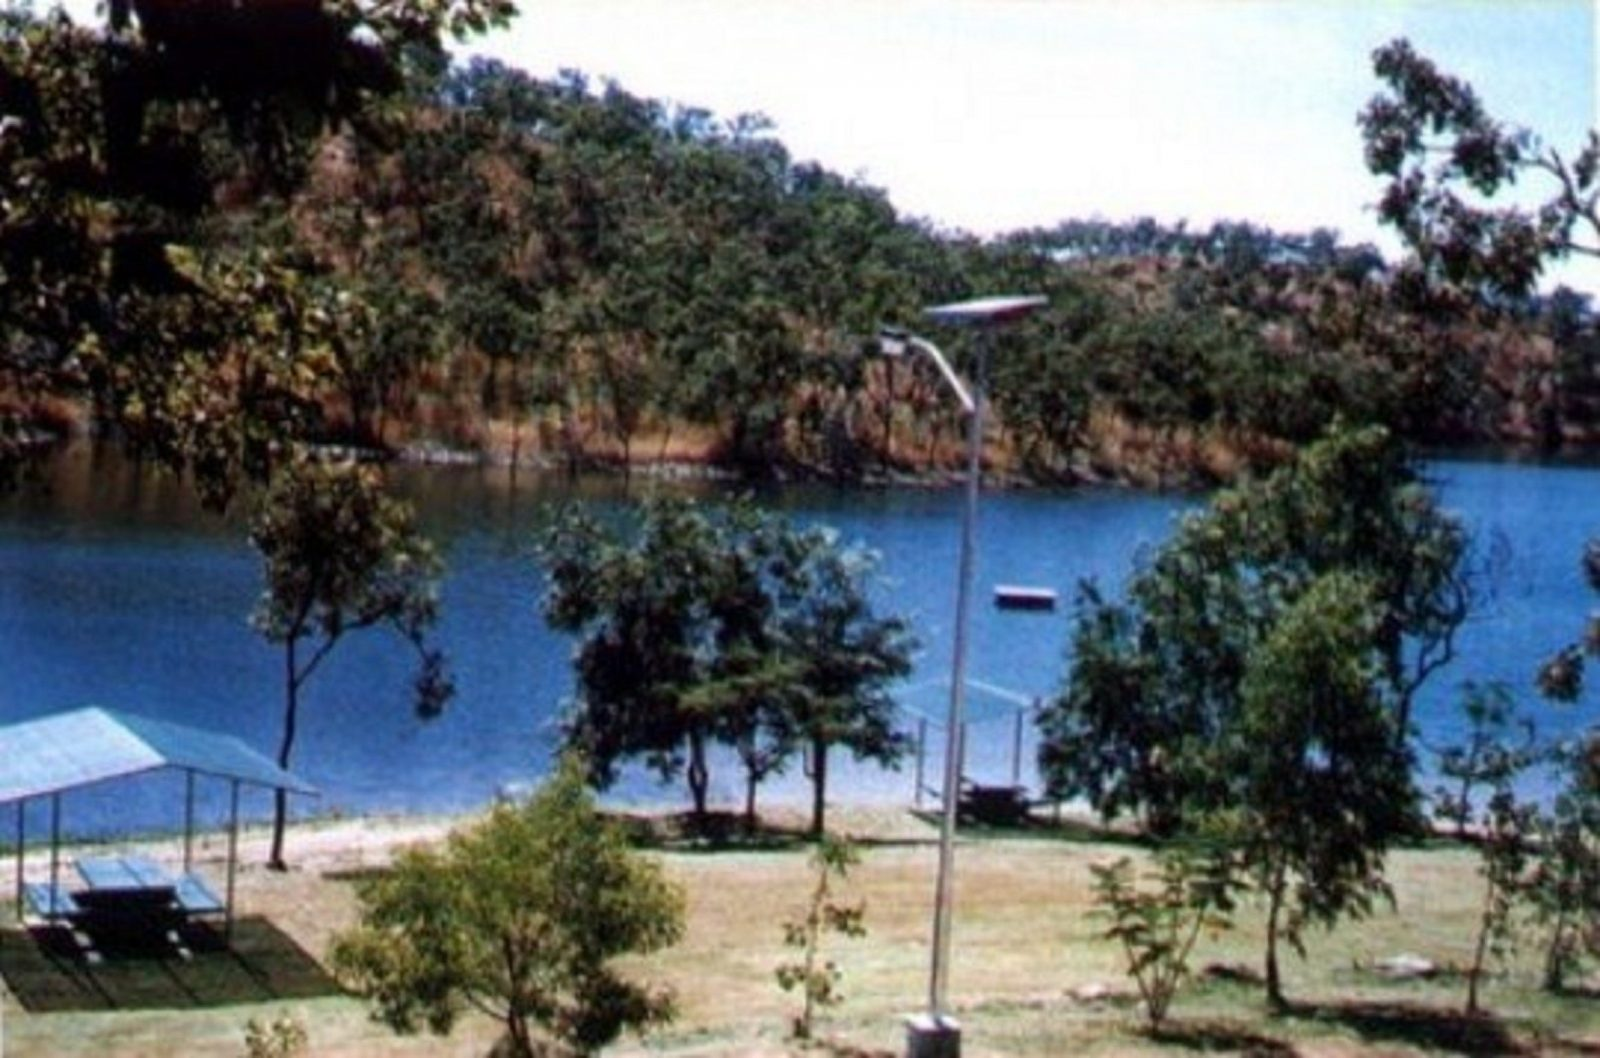 Lake Copperfield